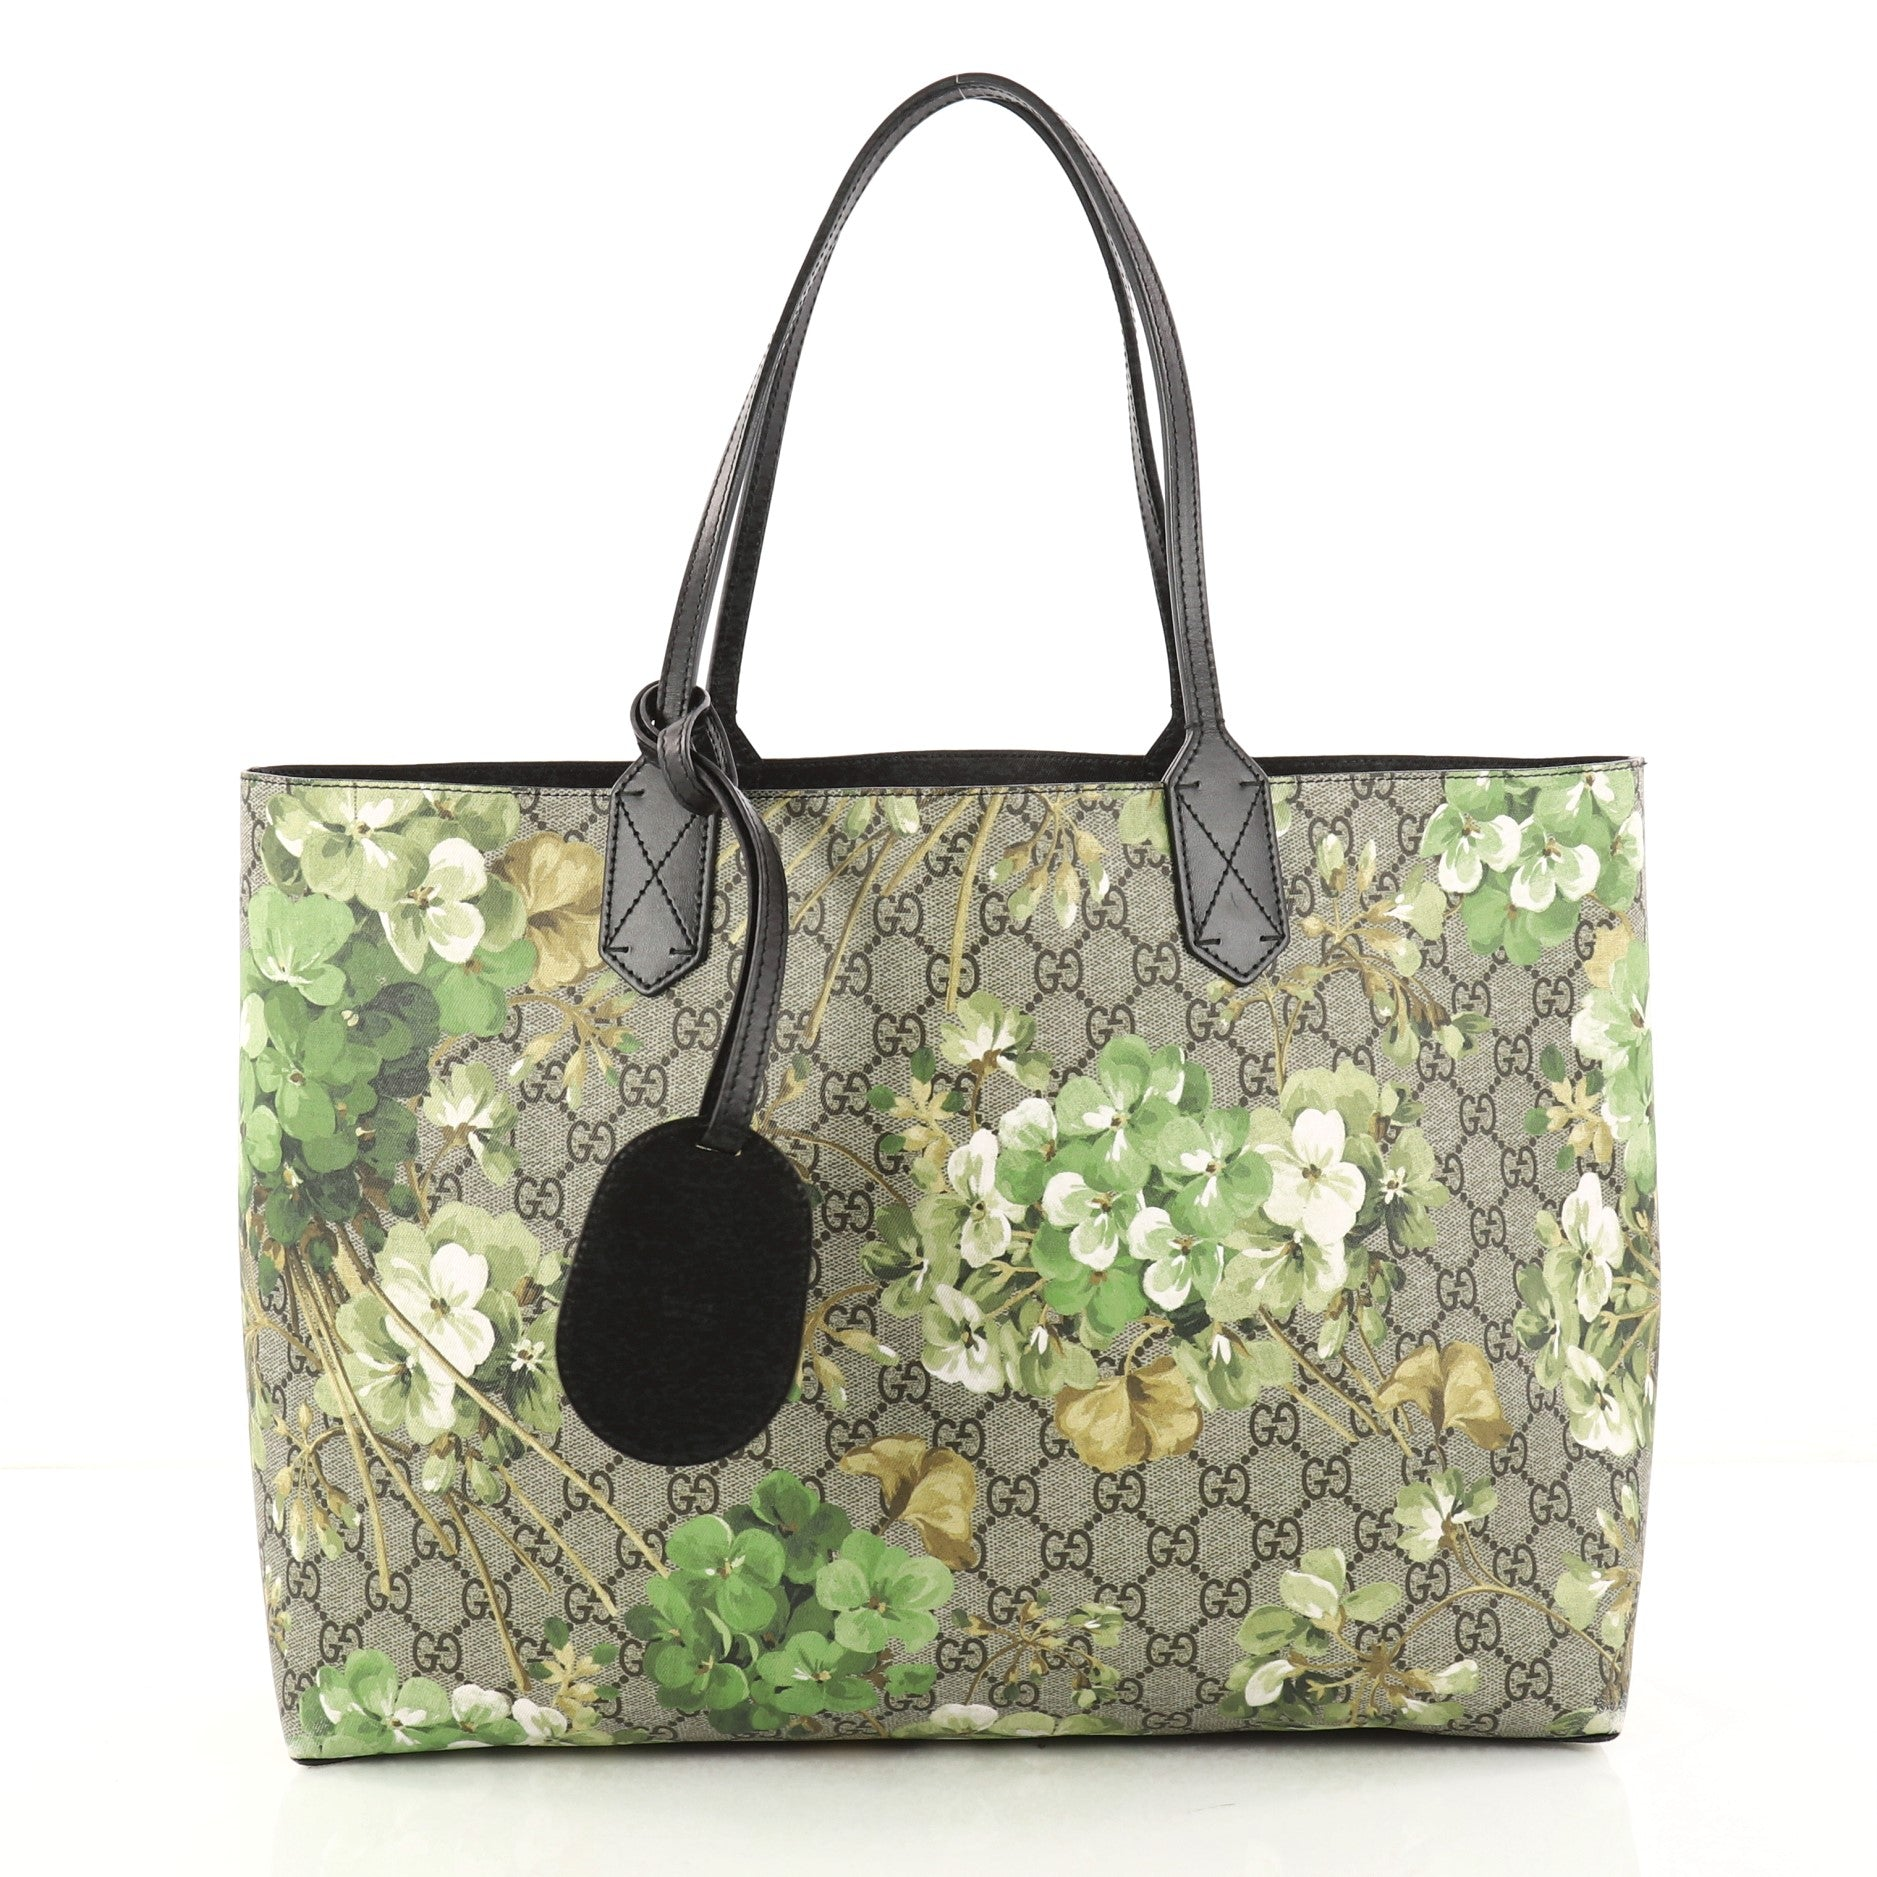 Reversible Tote Blooms GG Print Leather Medium